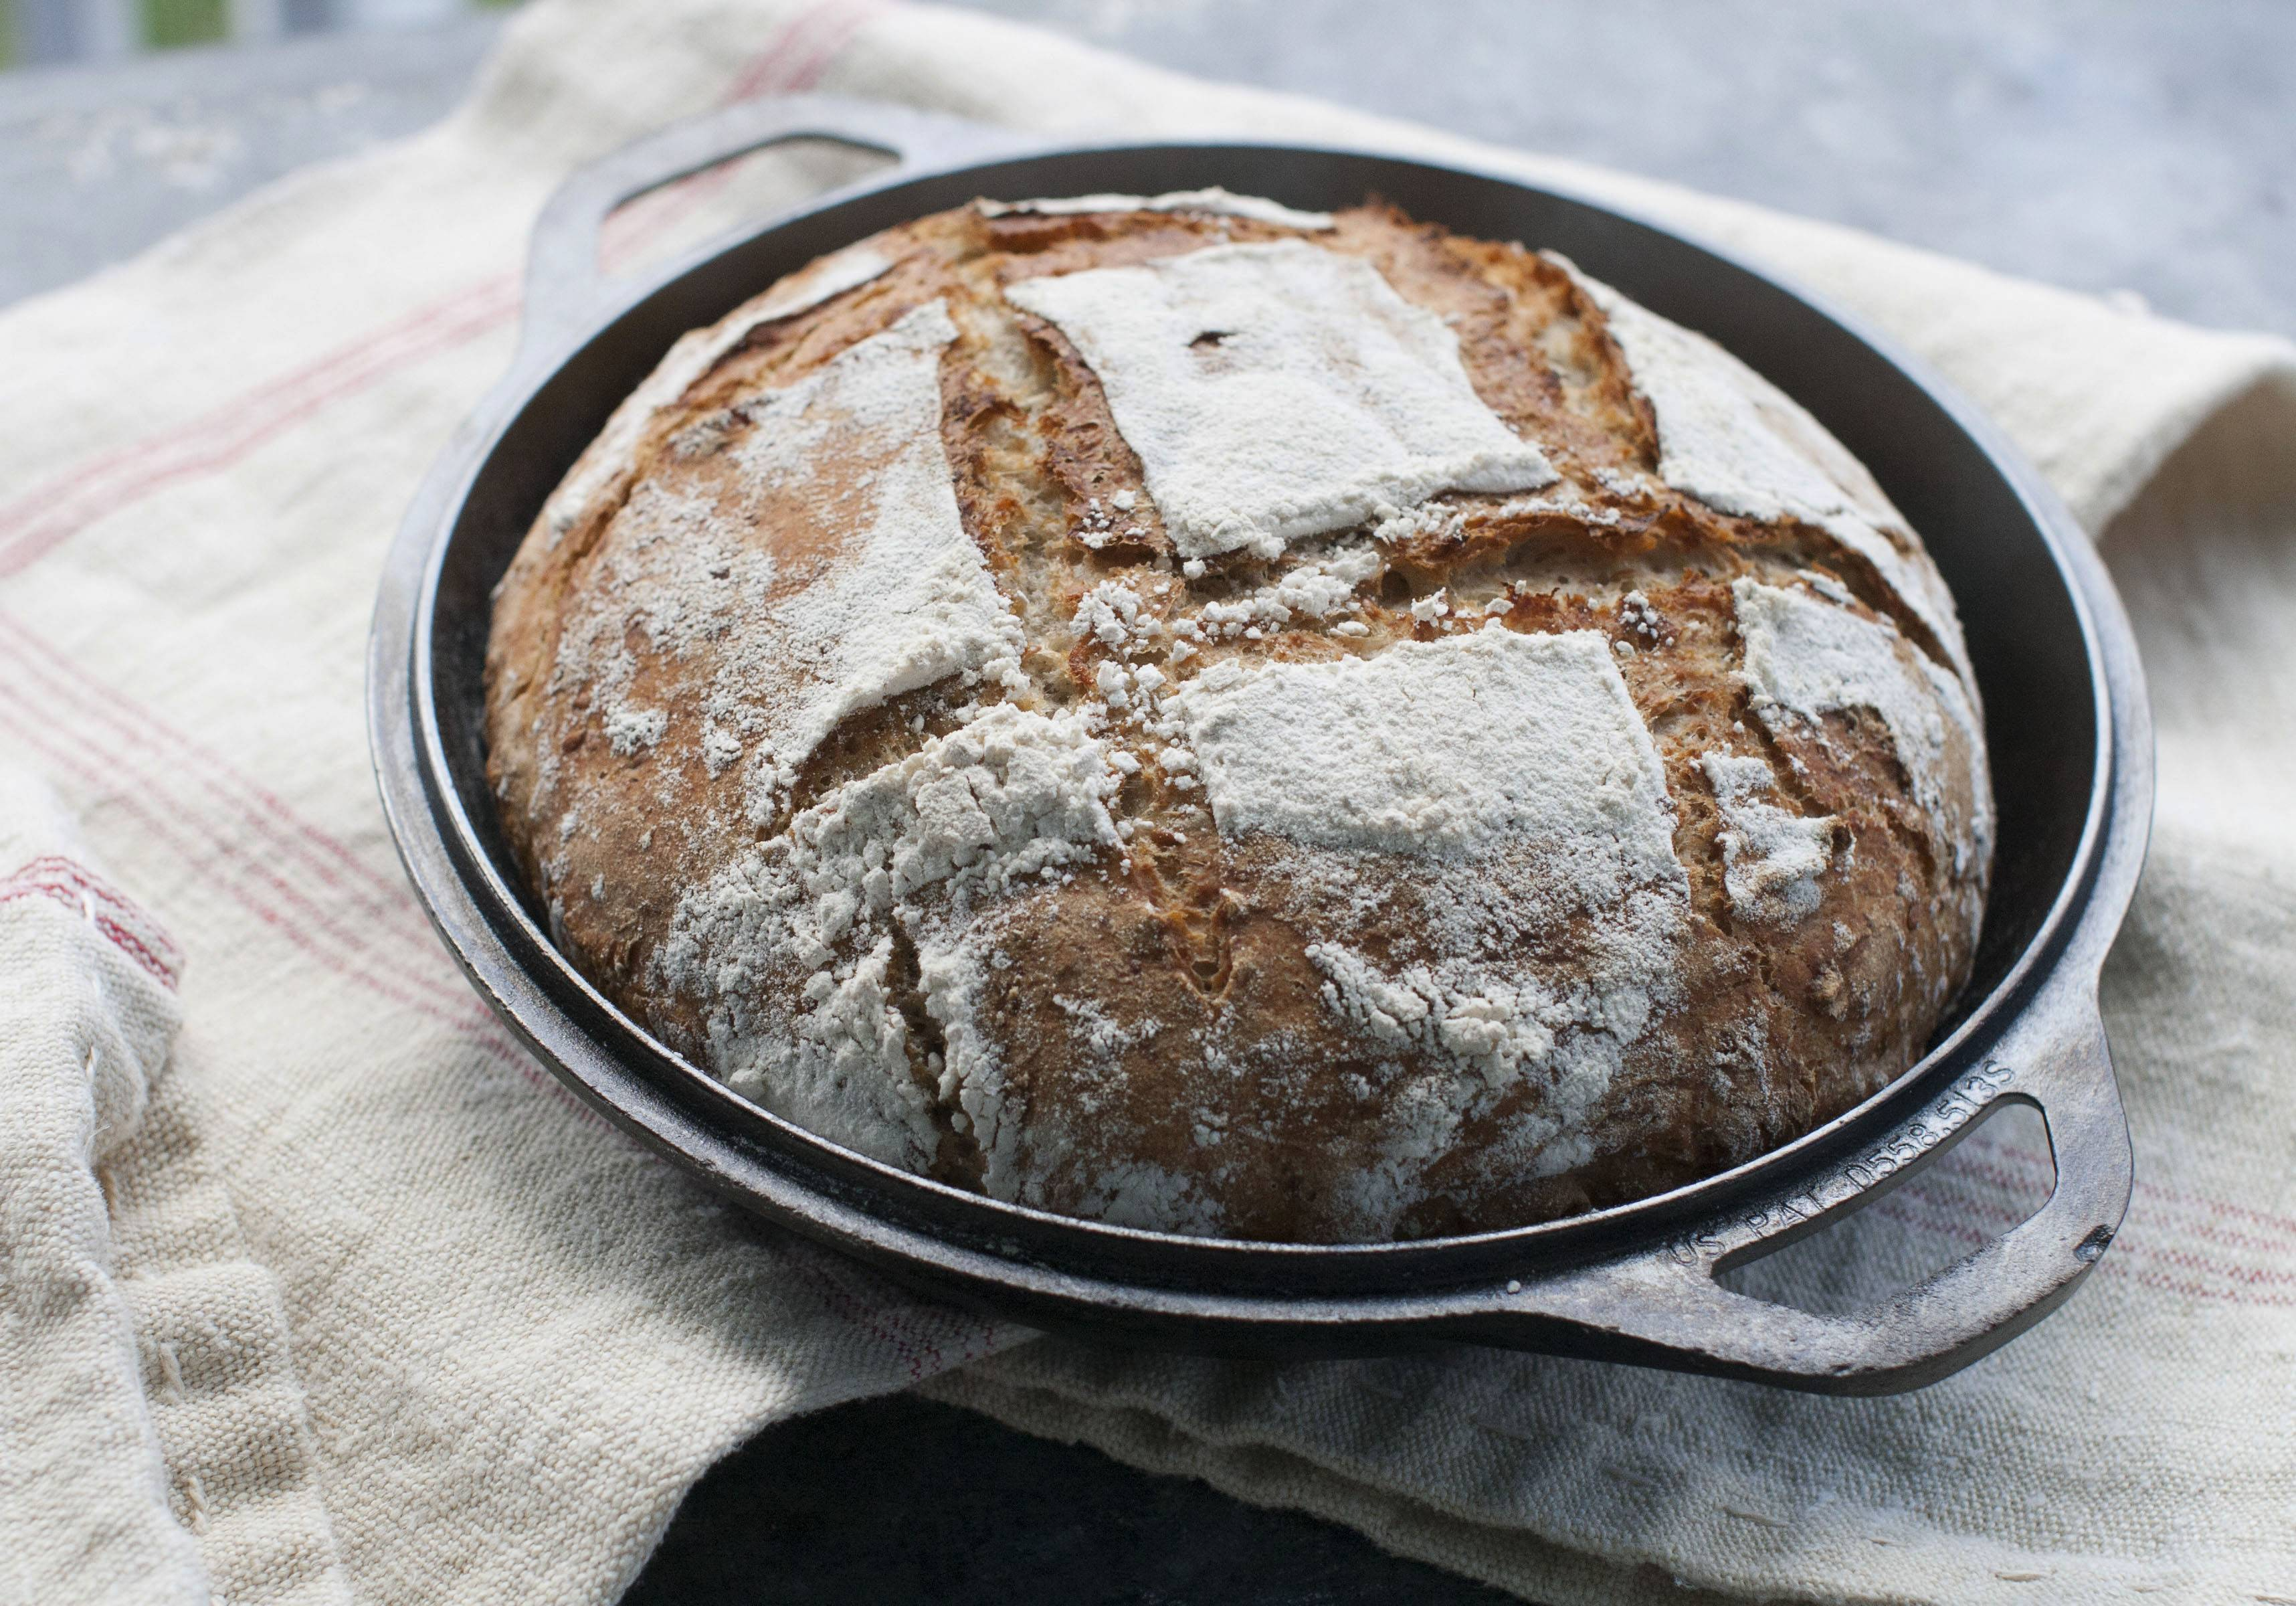 Baking multigrain bread in a Dutch oven gives it an artisanal quality.